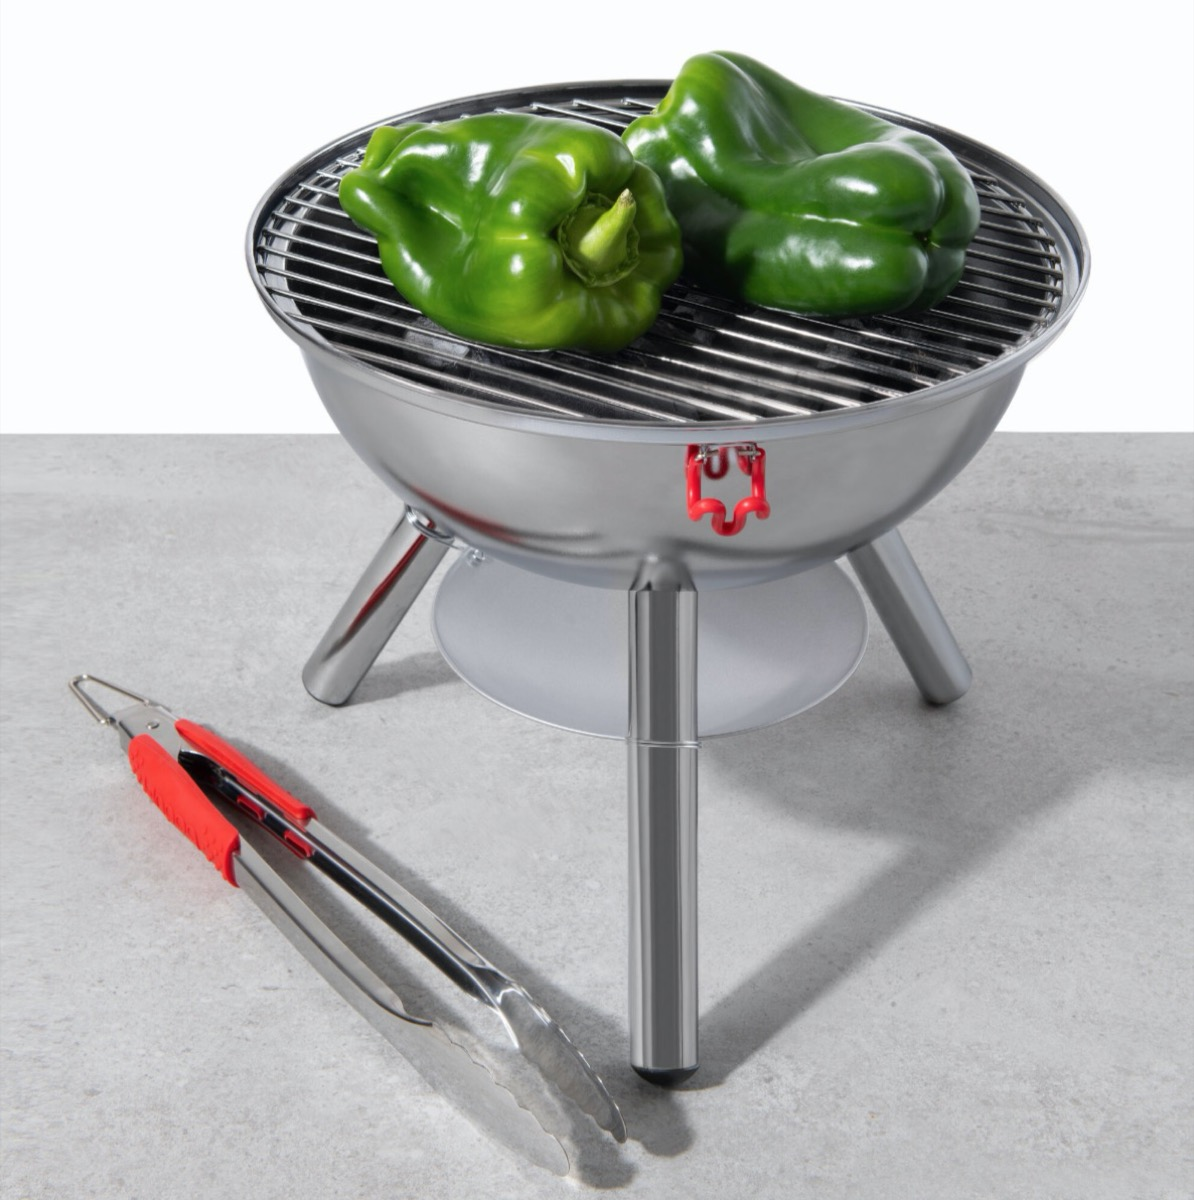 small silver grill with green pepper on it next to tongs